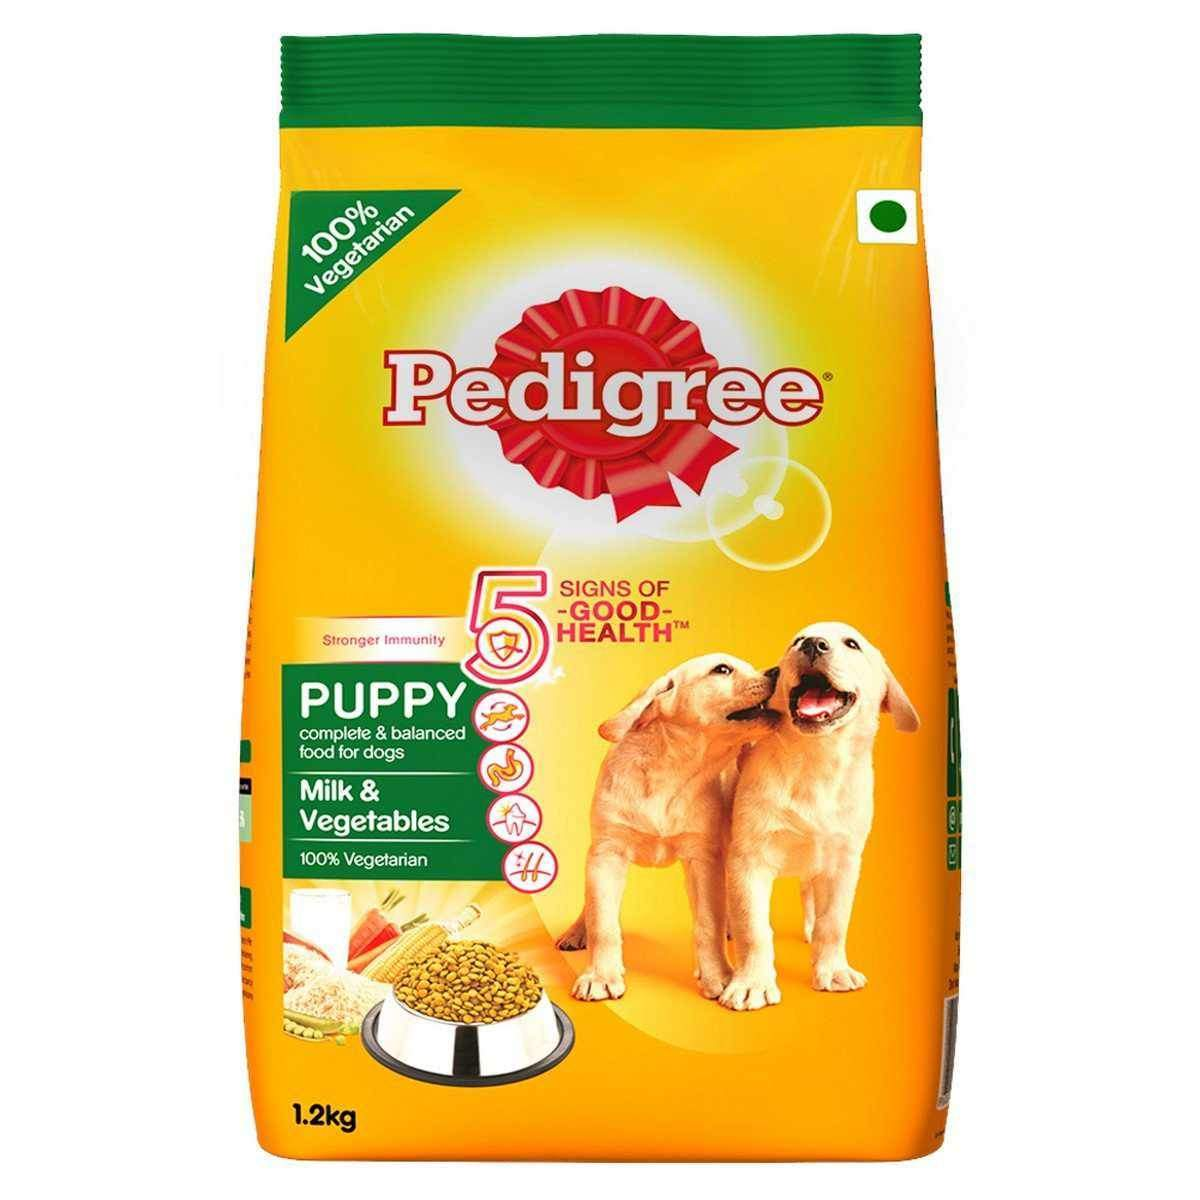 Jolly Wagger For Small Breed Puppy With Pedigree Milk & Vegetable 2.4kg (1.2kg + 1.2kg)